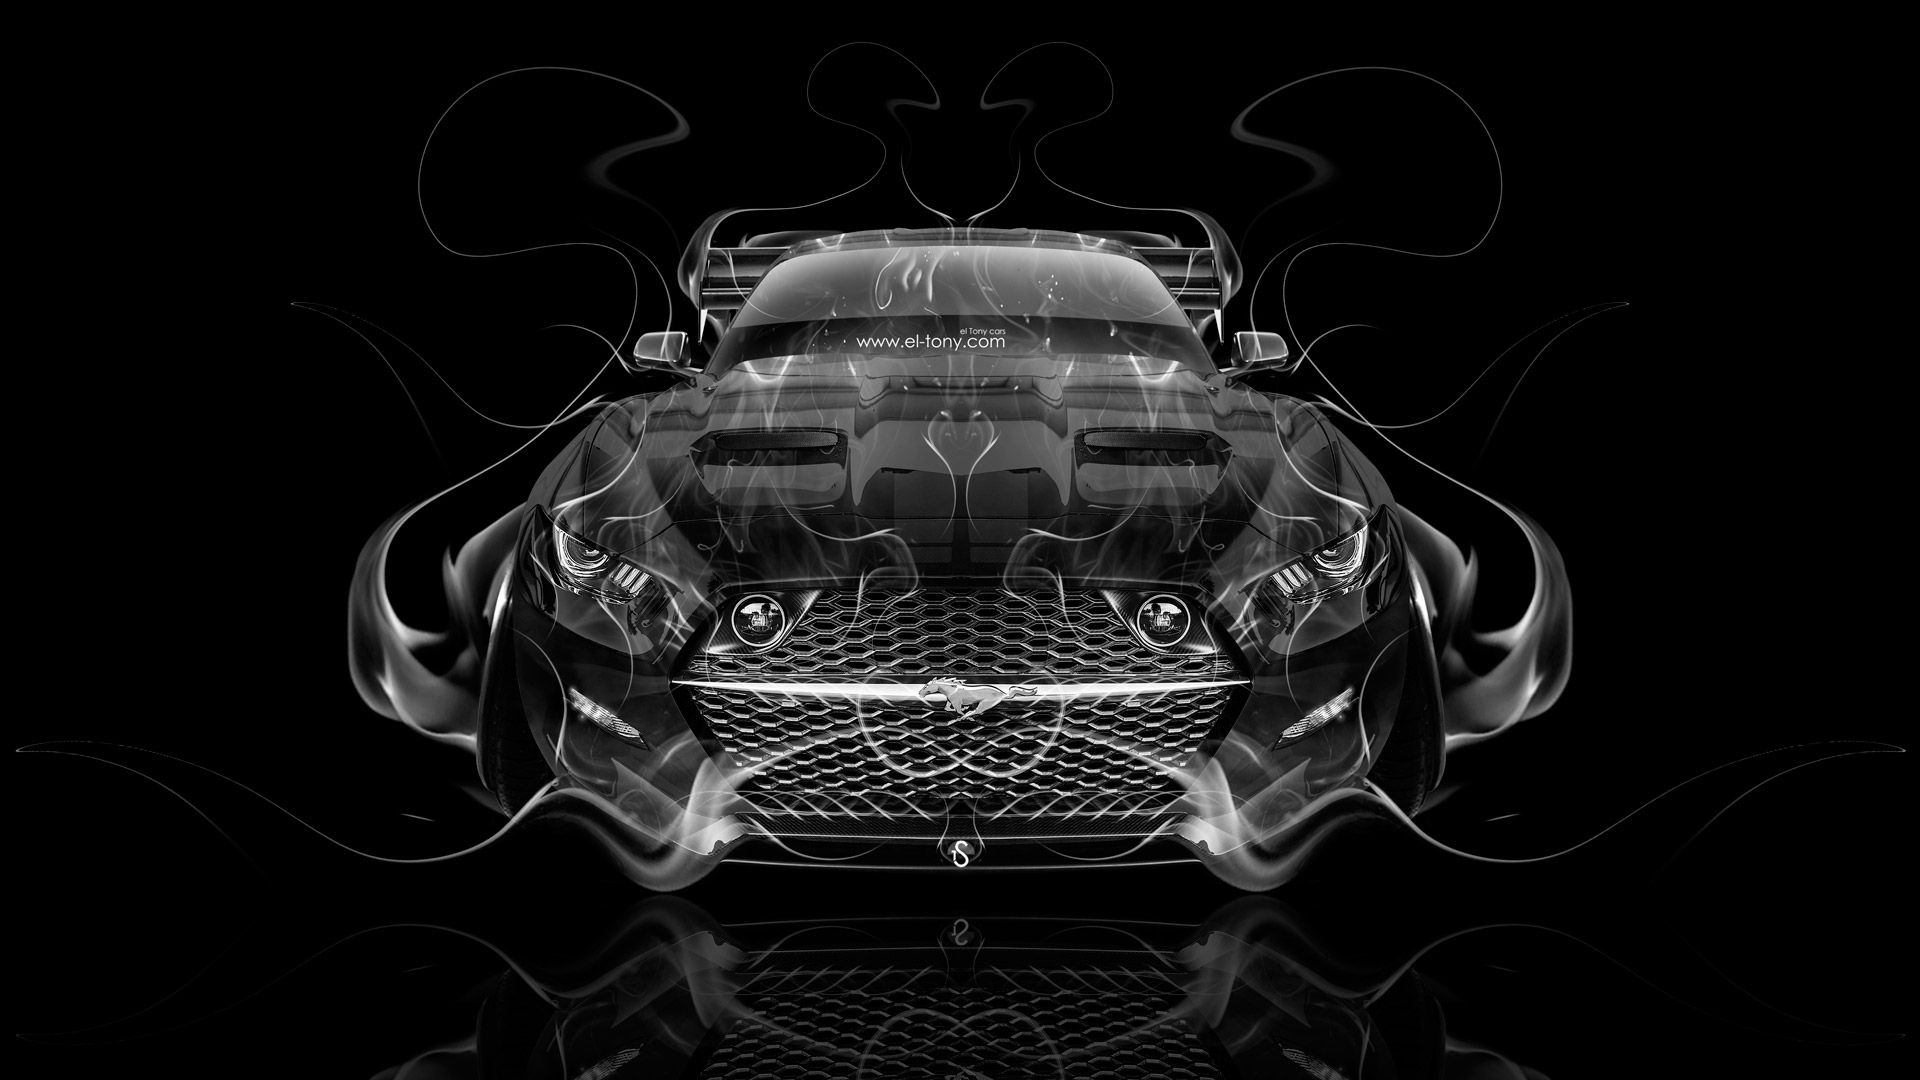 Ford Mustang Muscle Back Fire Abstract Car 2014 Art HD Wallpapers Design By Tony Kokhan [www.el Tony.com]  | El Tony.com | Pinterest | Ford Mustang, ...